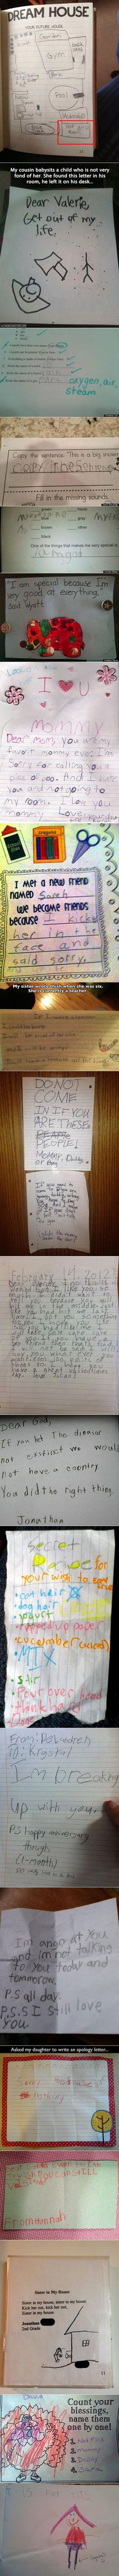 We have rounded up some funny and unusual, yet real, notes from geeky kids.: